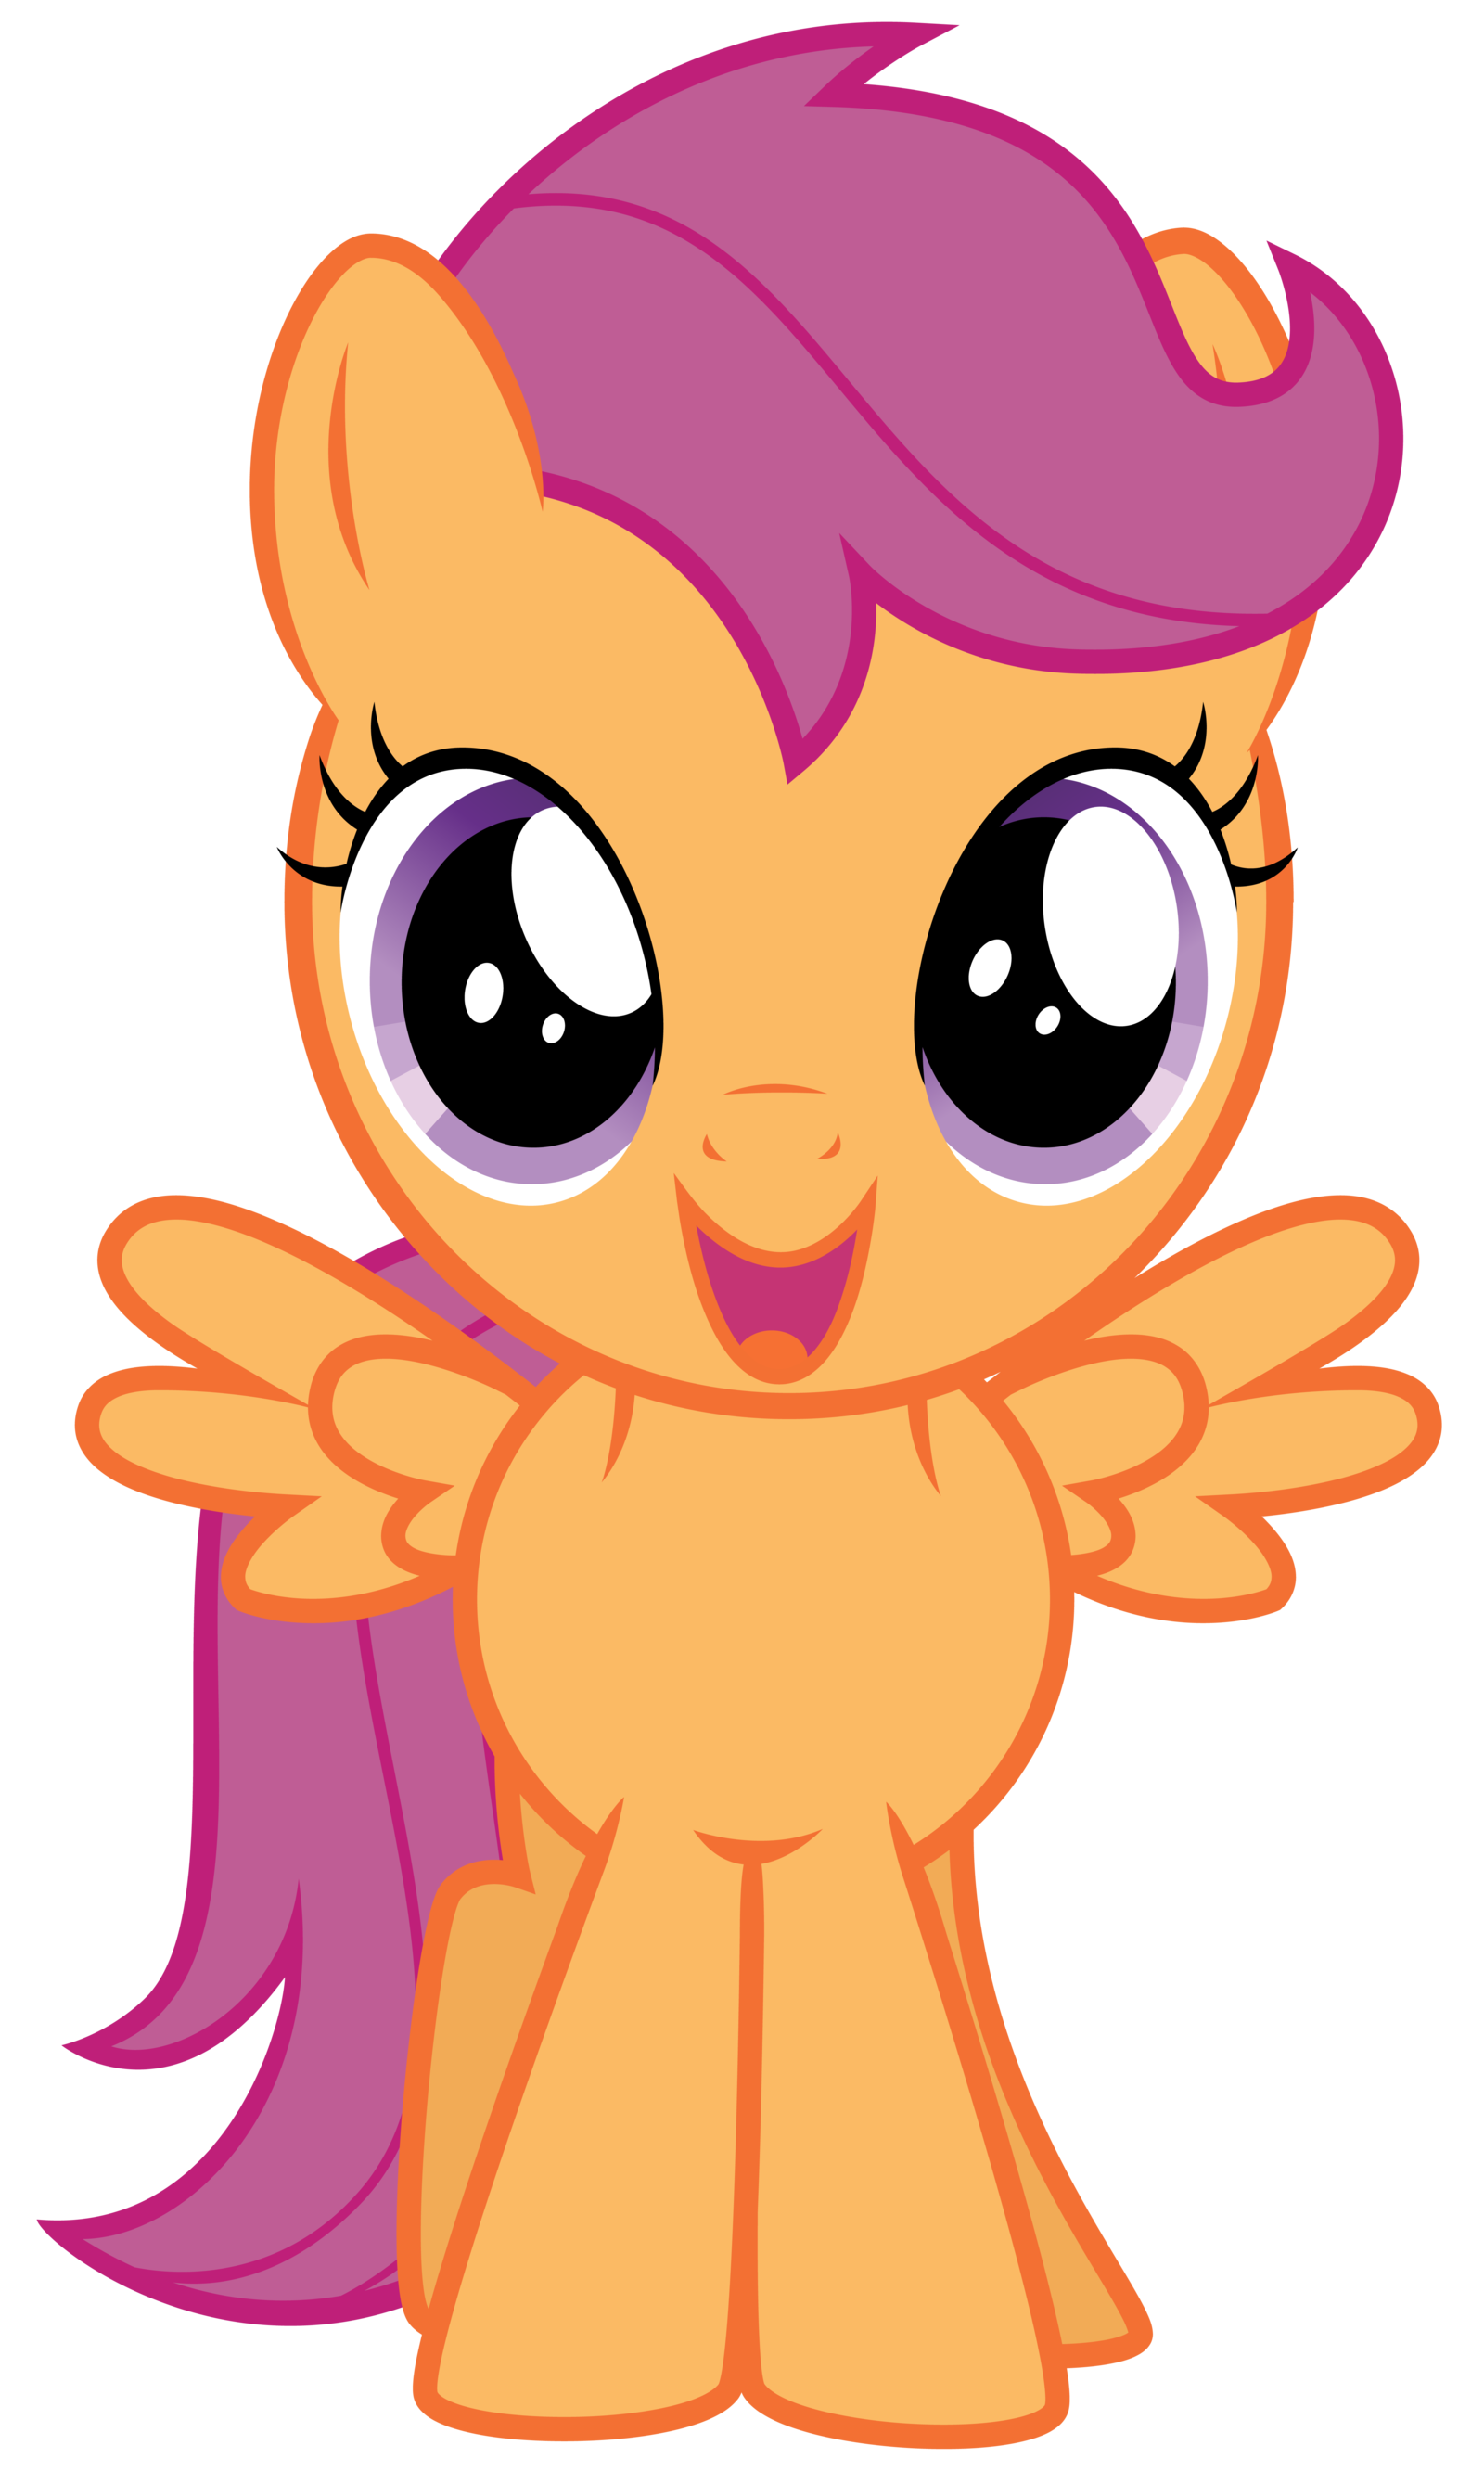 My Little Pony Scootaloo Drawing Free Image Browse among thousands of pixel perfect icons or import your own vectors. https creativecommons org licenses by nc nd 4 0